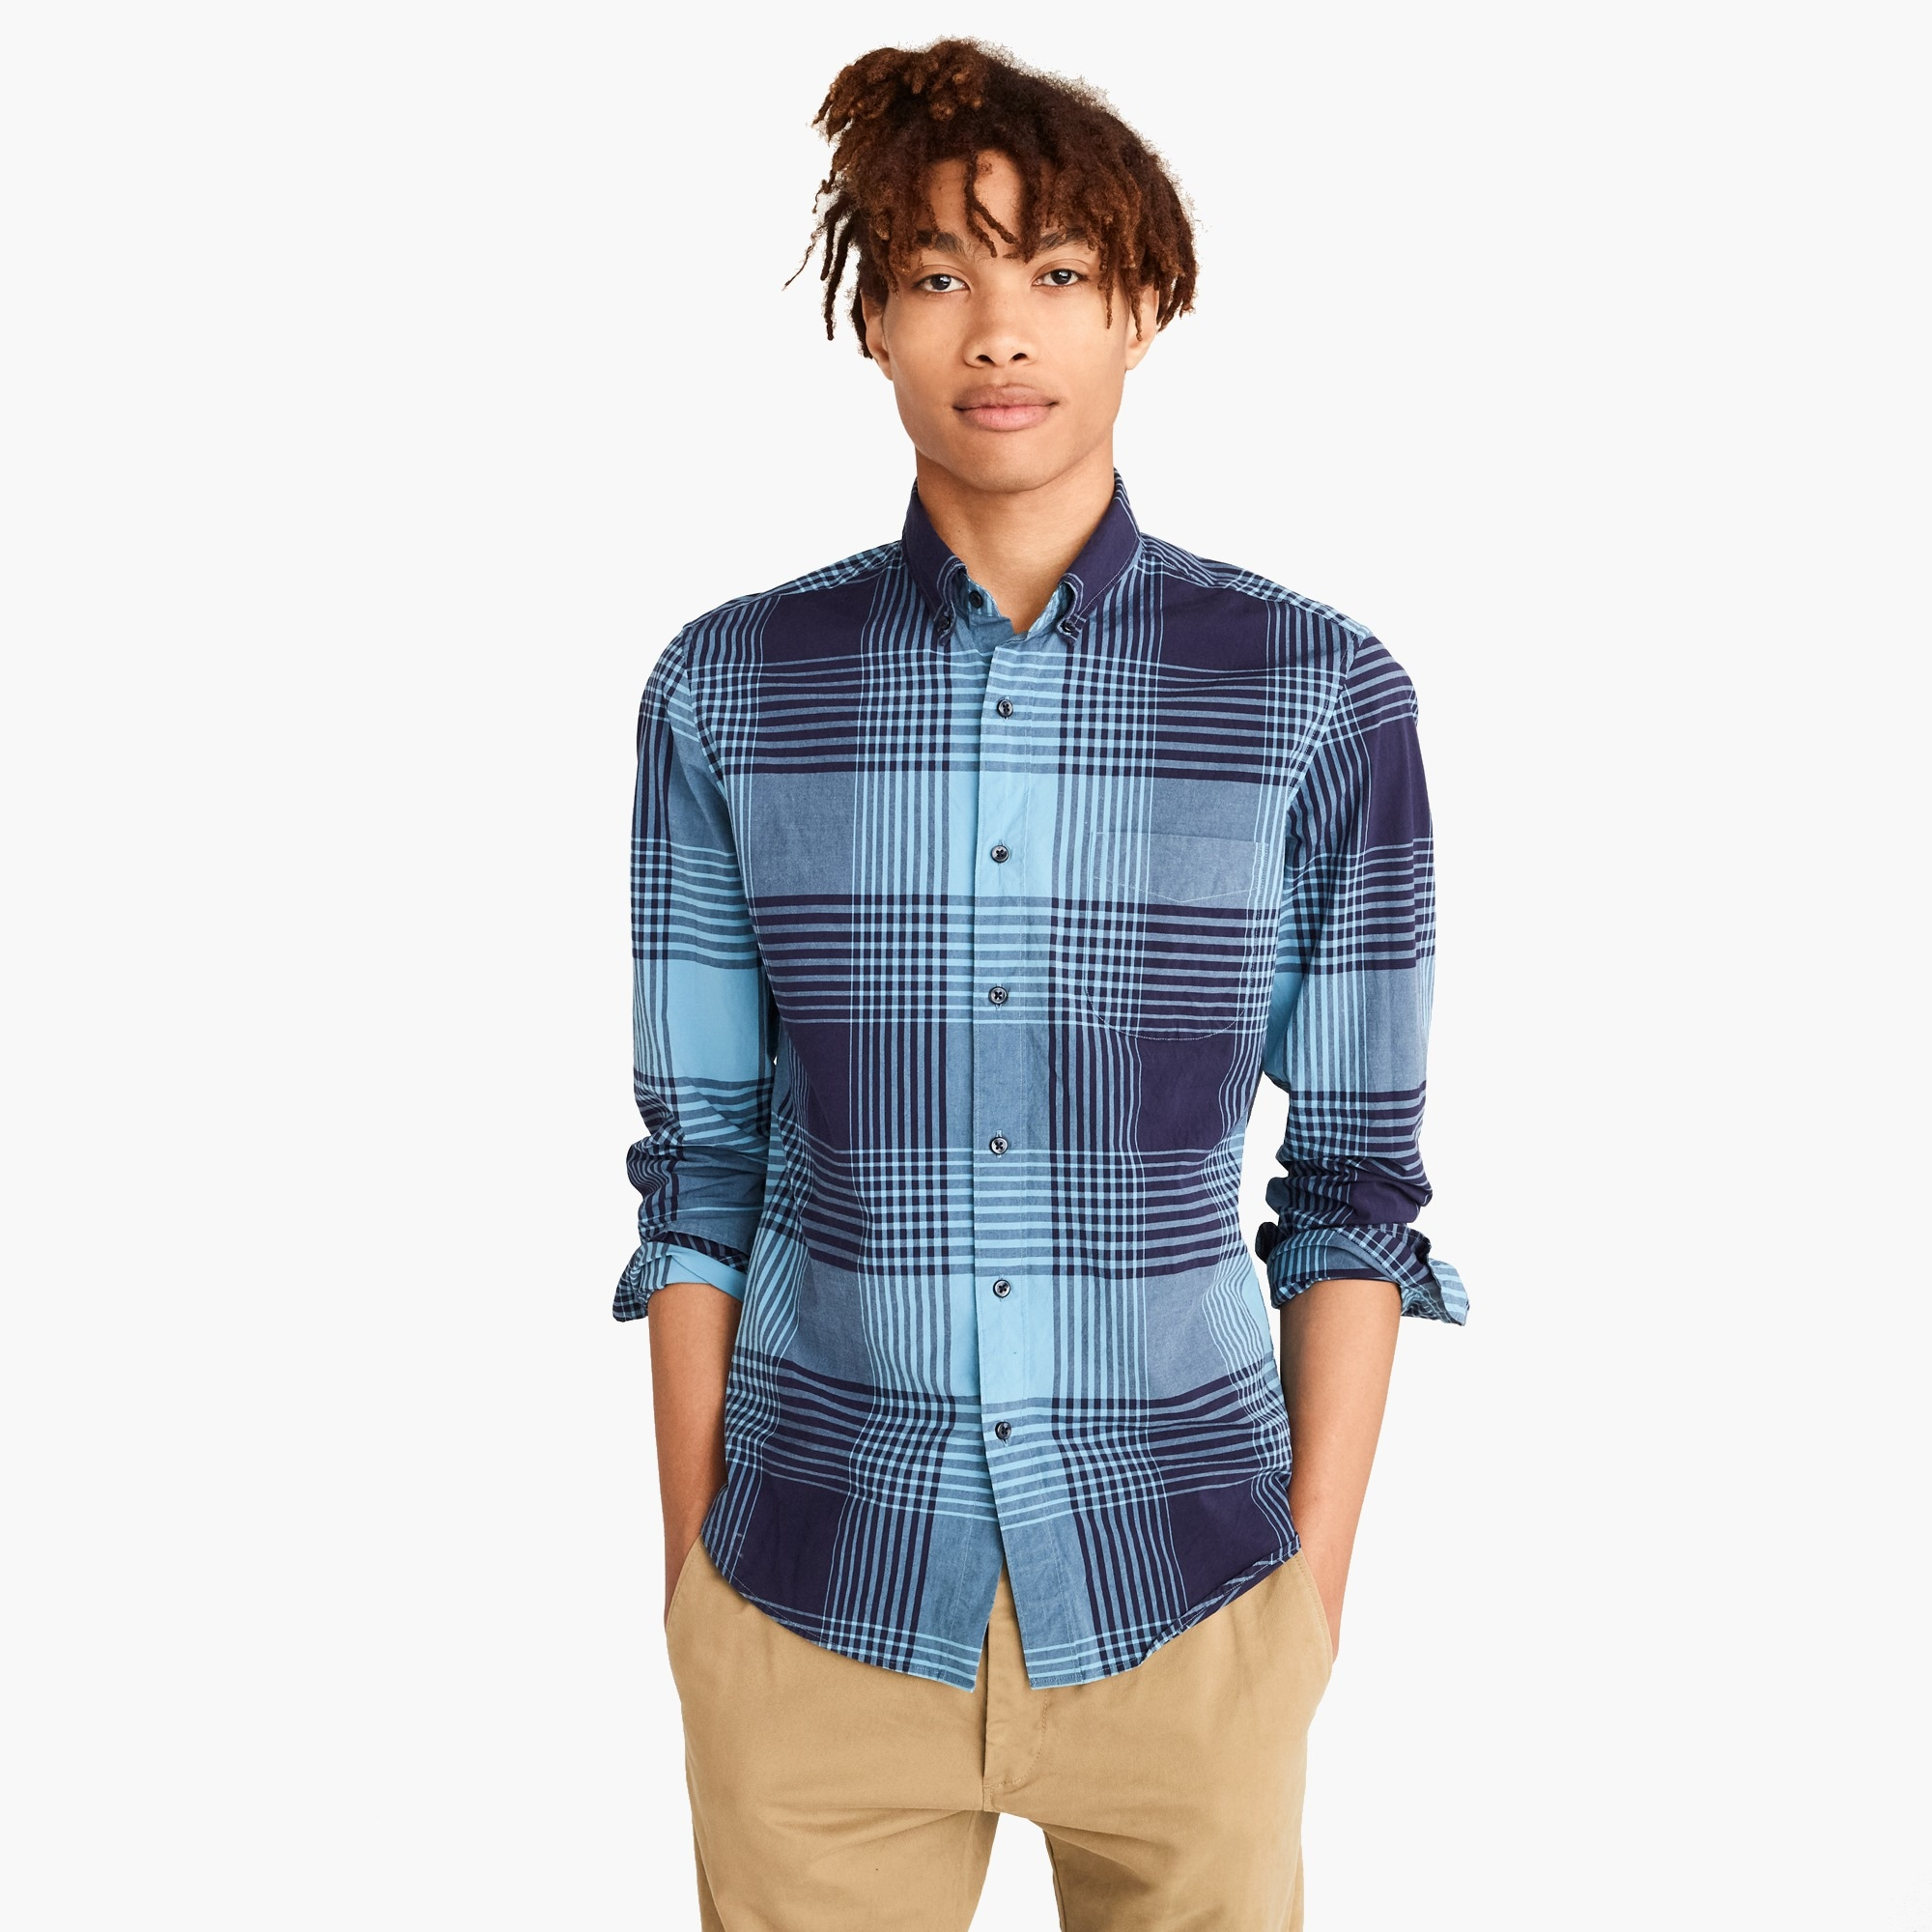 Stretch Secret Wash shirt in bold plaid men new arrivals c